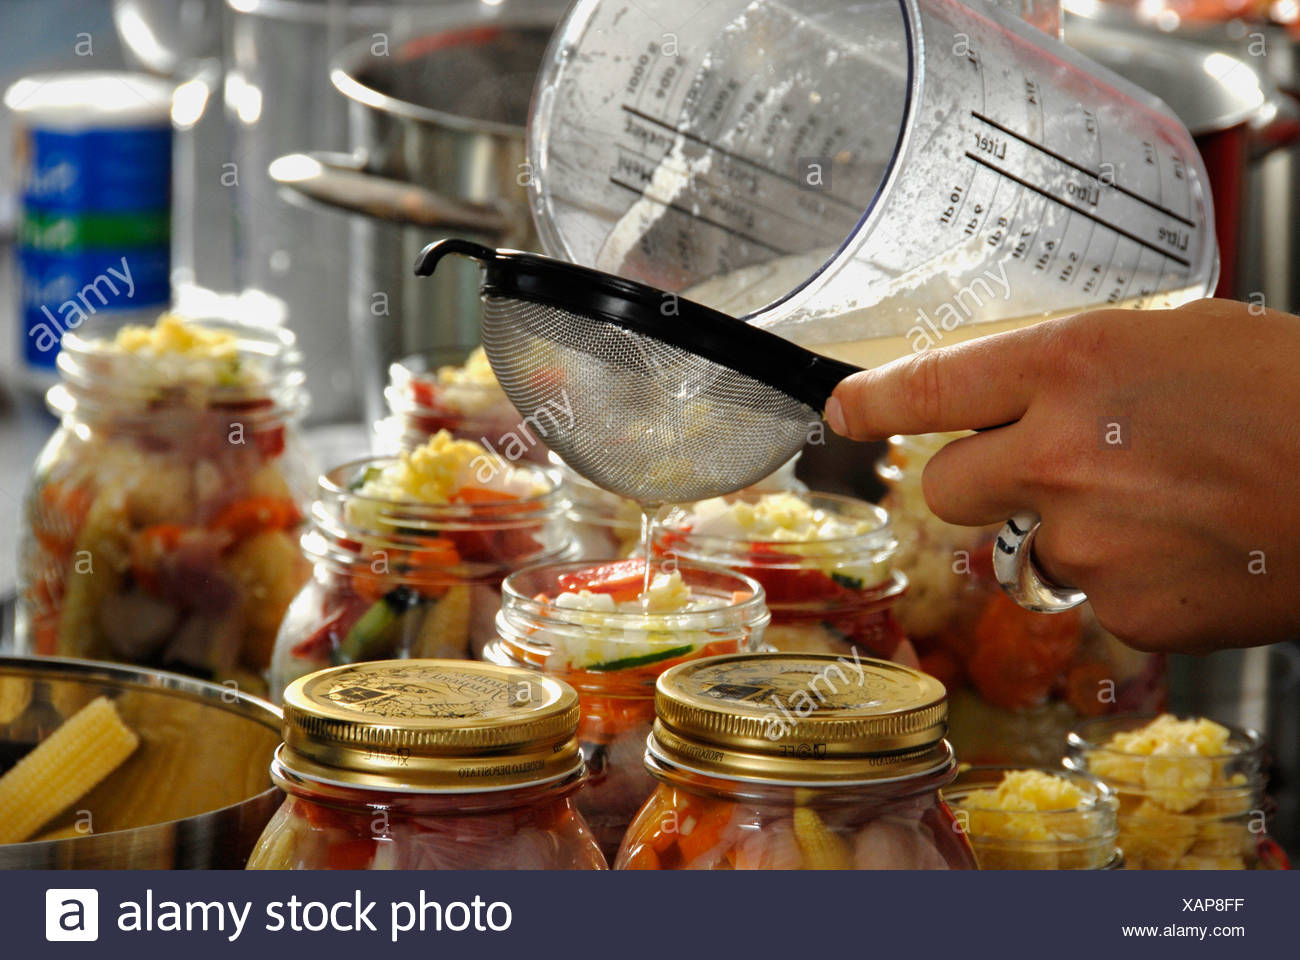 Preservation, vegetables, preserving, long-lasting, durable, food, eating, cook, tradition - Stock Image